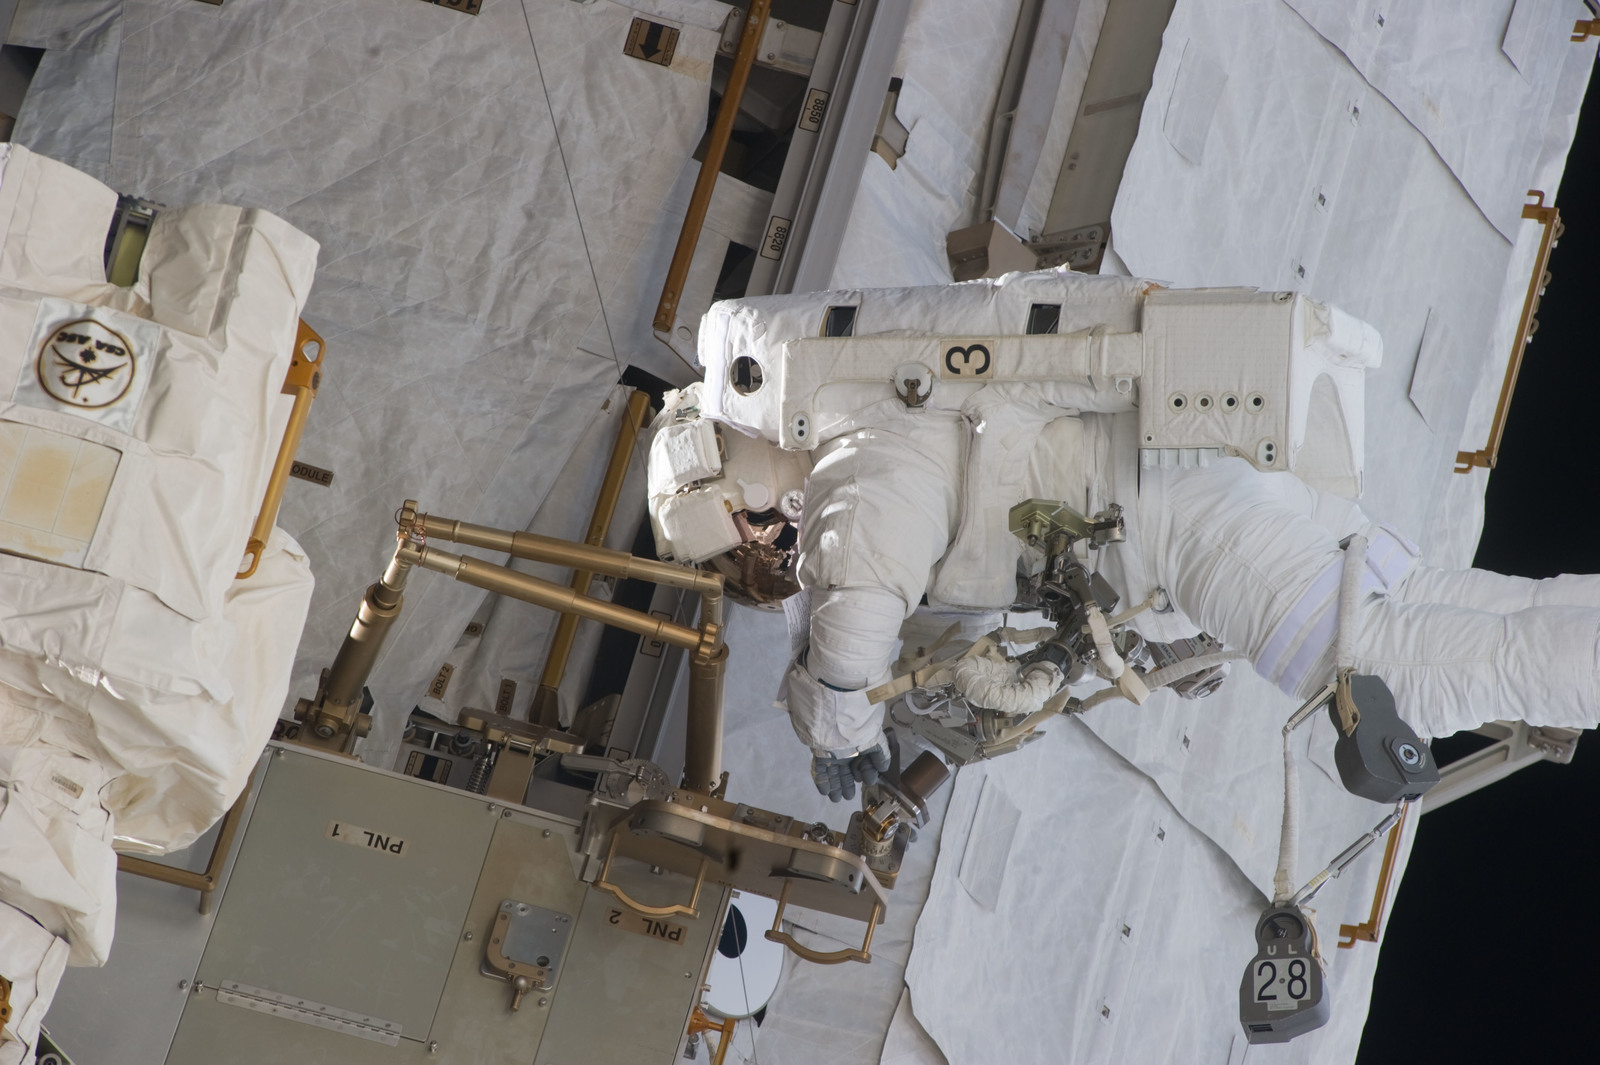 S134E009630 - STS-134 - View of STS-134 MS Fincke during EVA-4